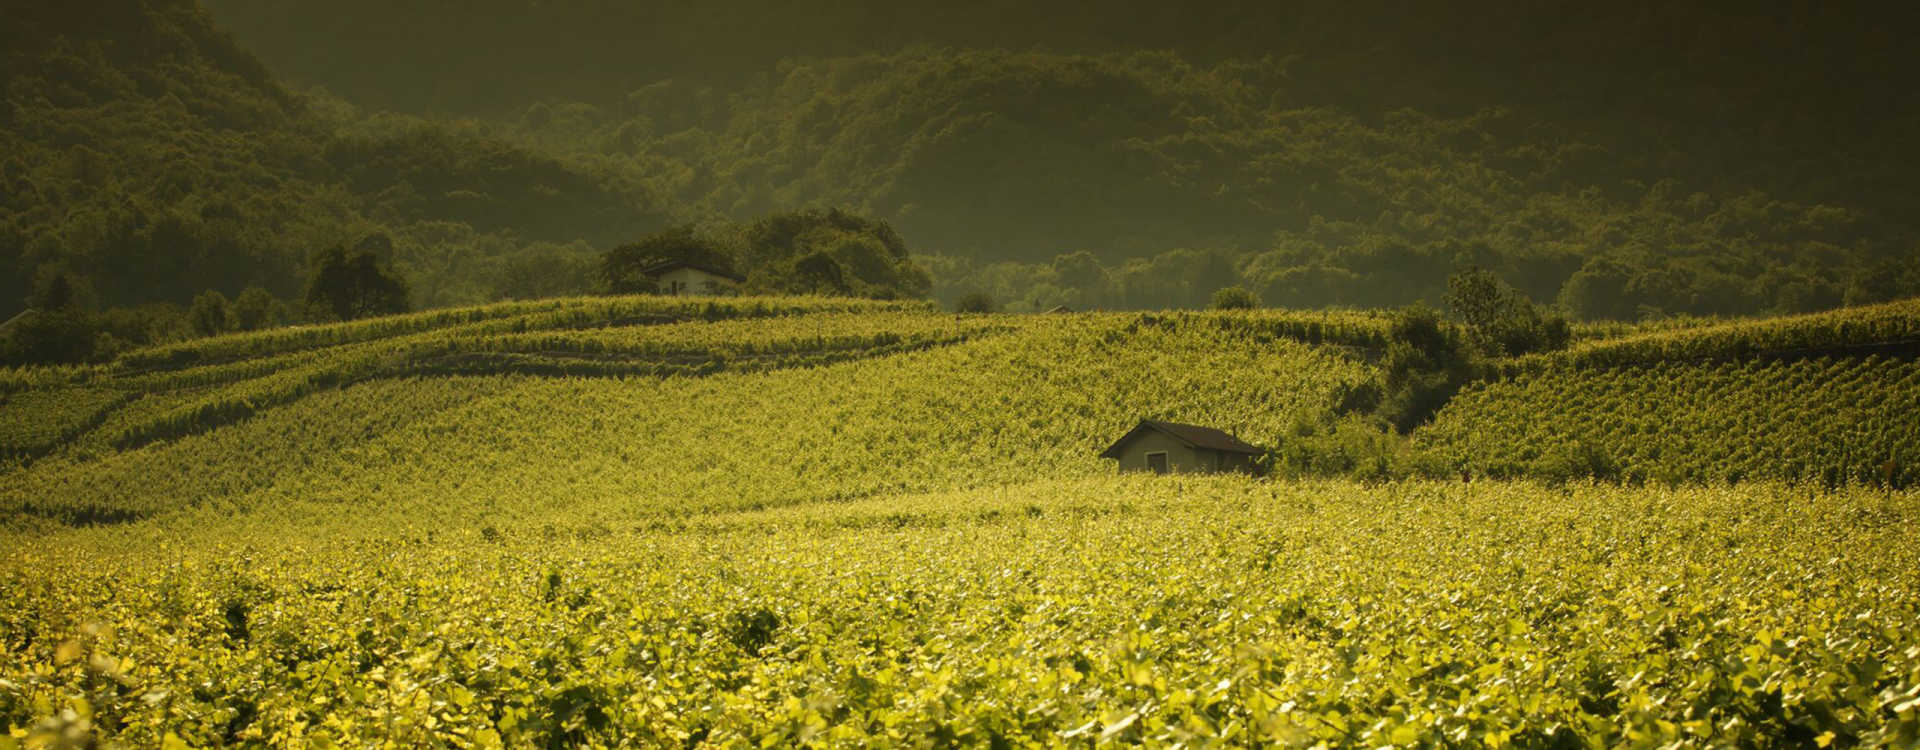 Image for Cotes de Provence Wine Provence, France content section